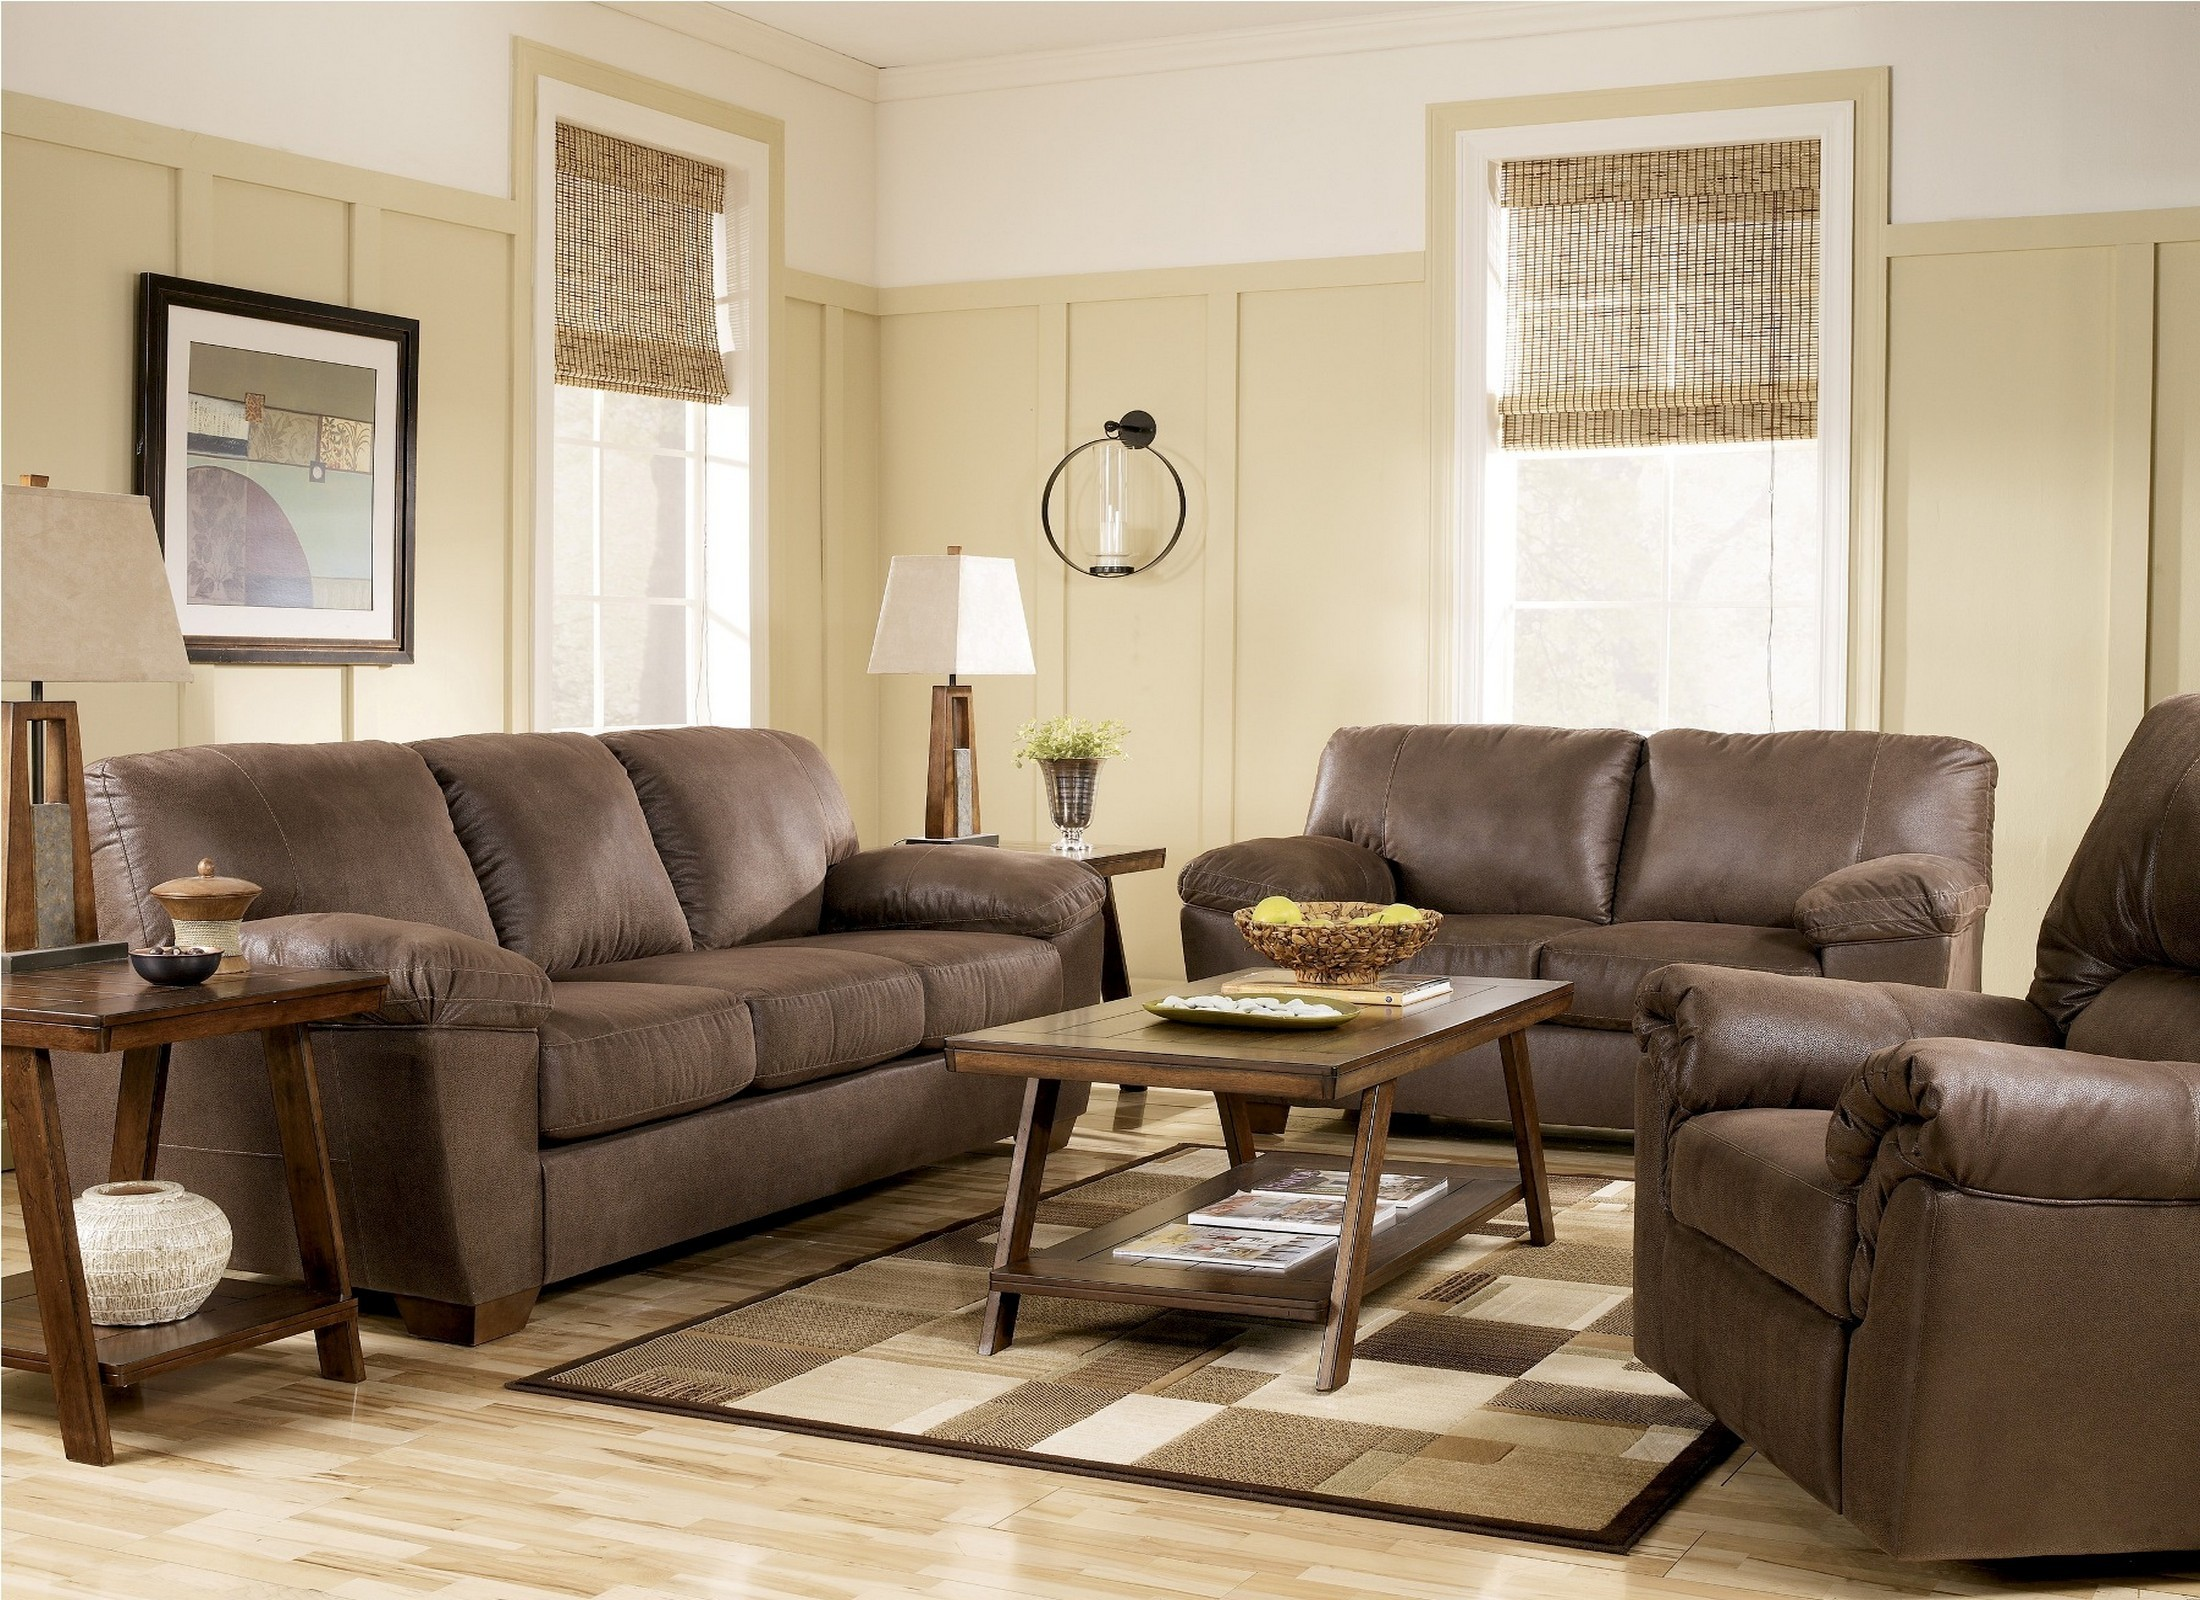 Amazon Walnut Living Room Set From Ashley 67505 Coleman Furniture